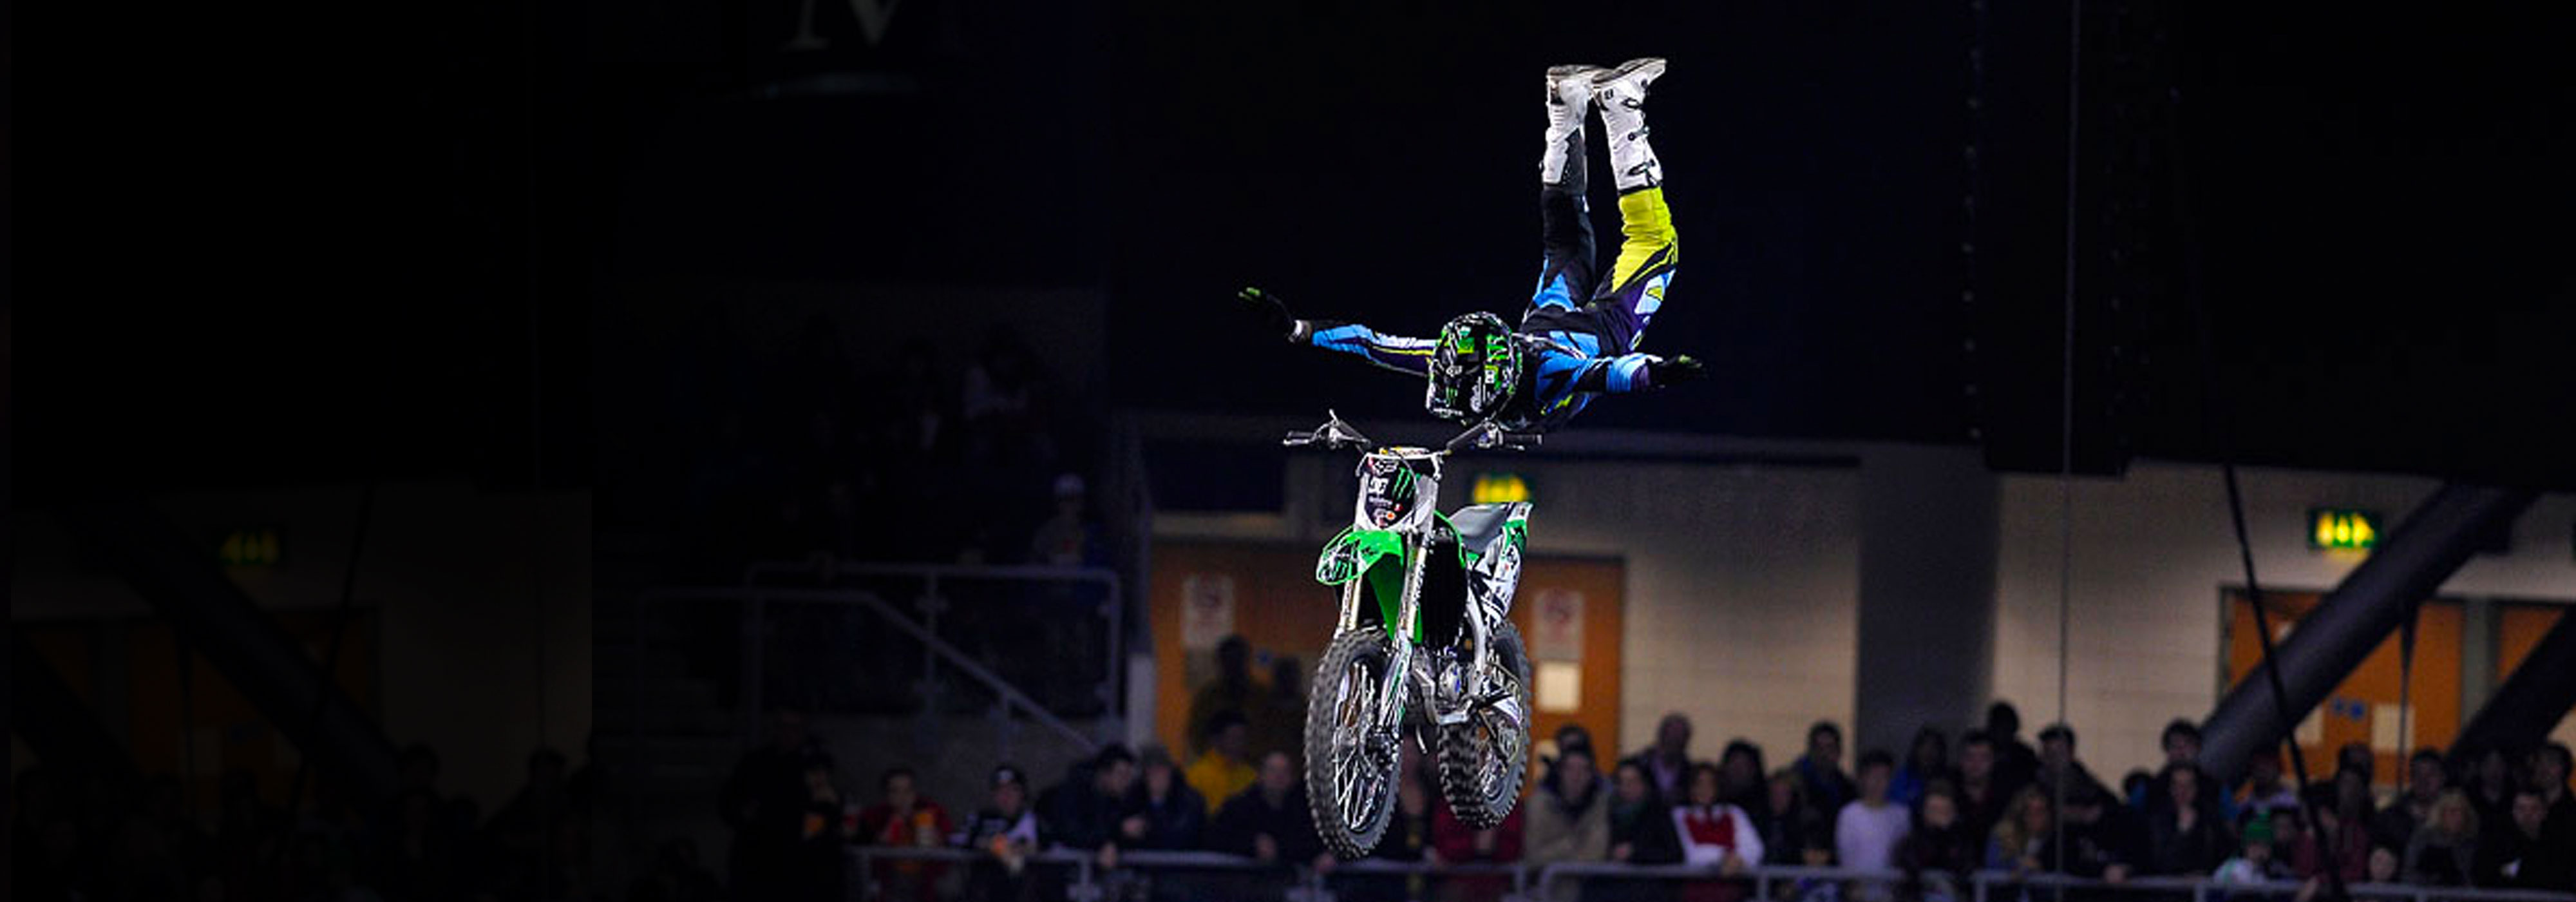 Arenacross Press